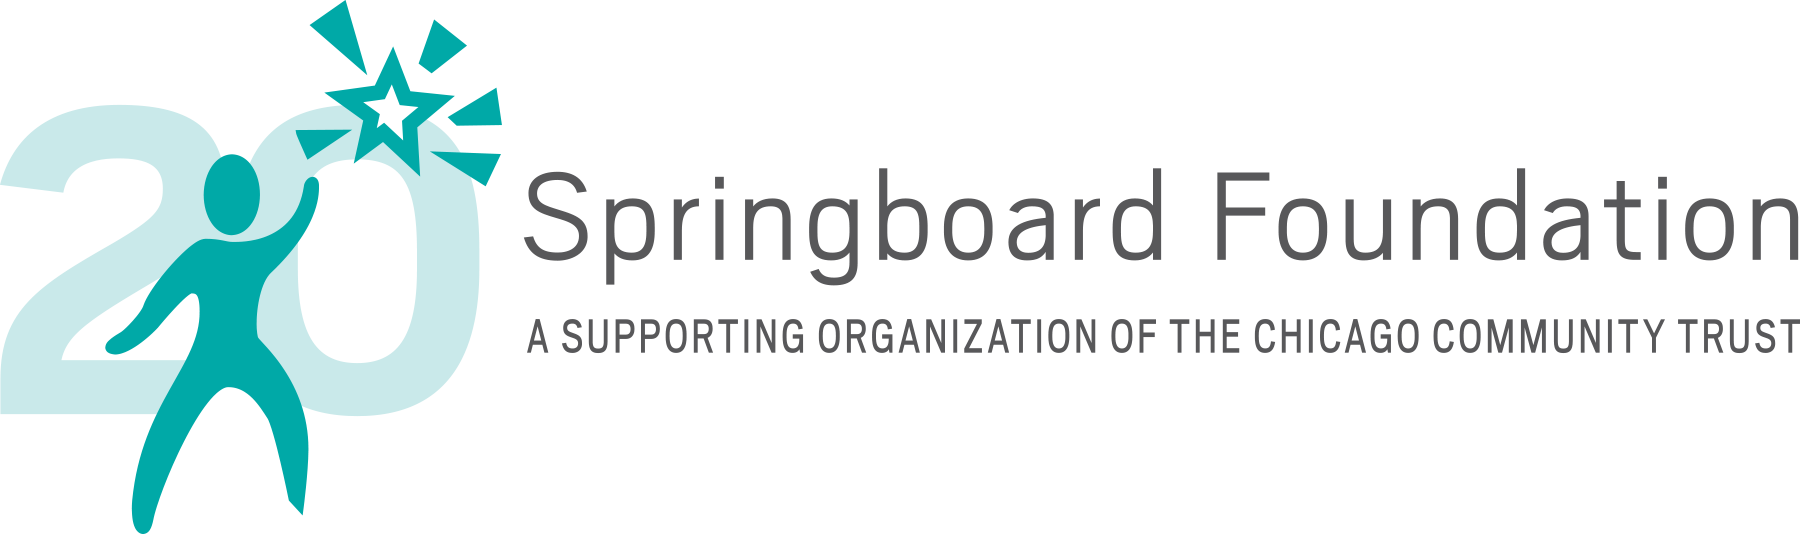 Springboard Foundation 20th Anniversary